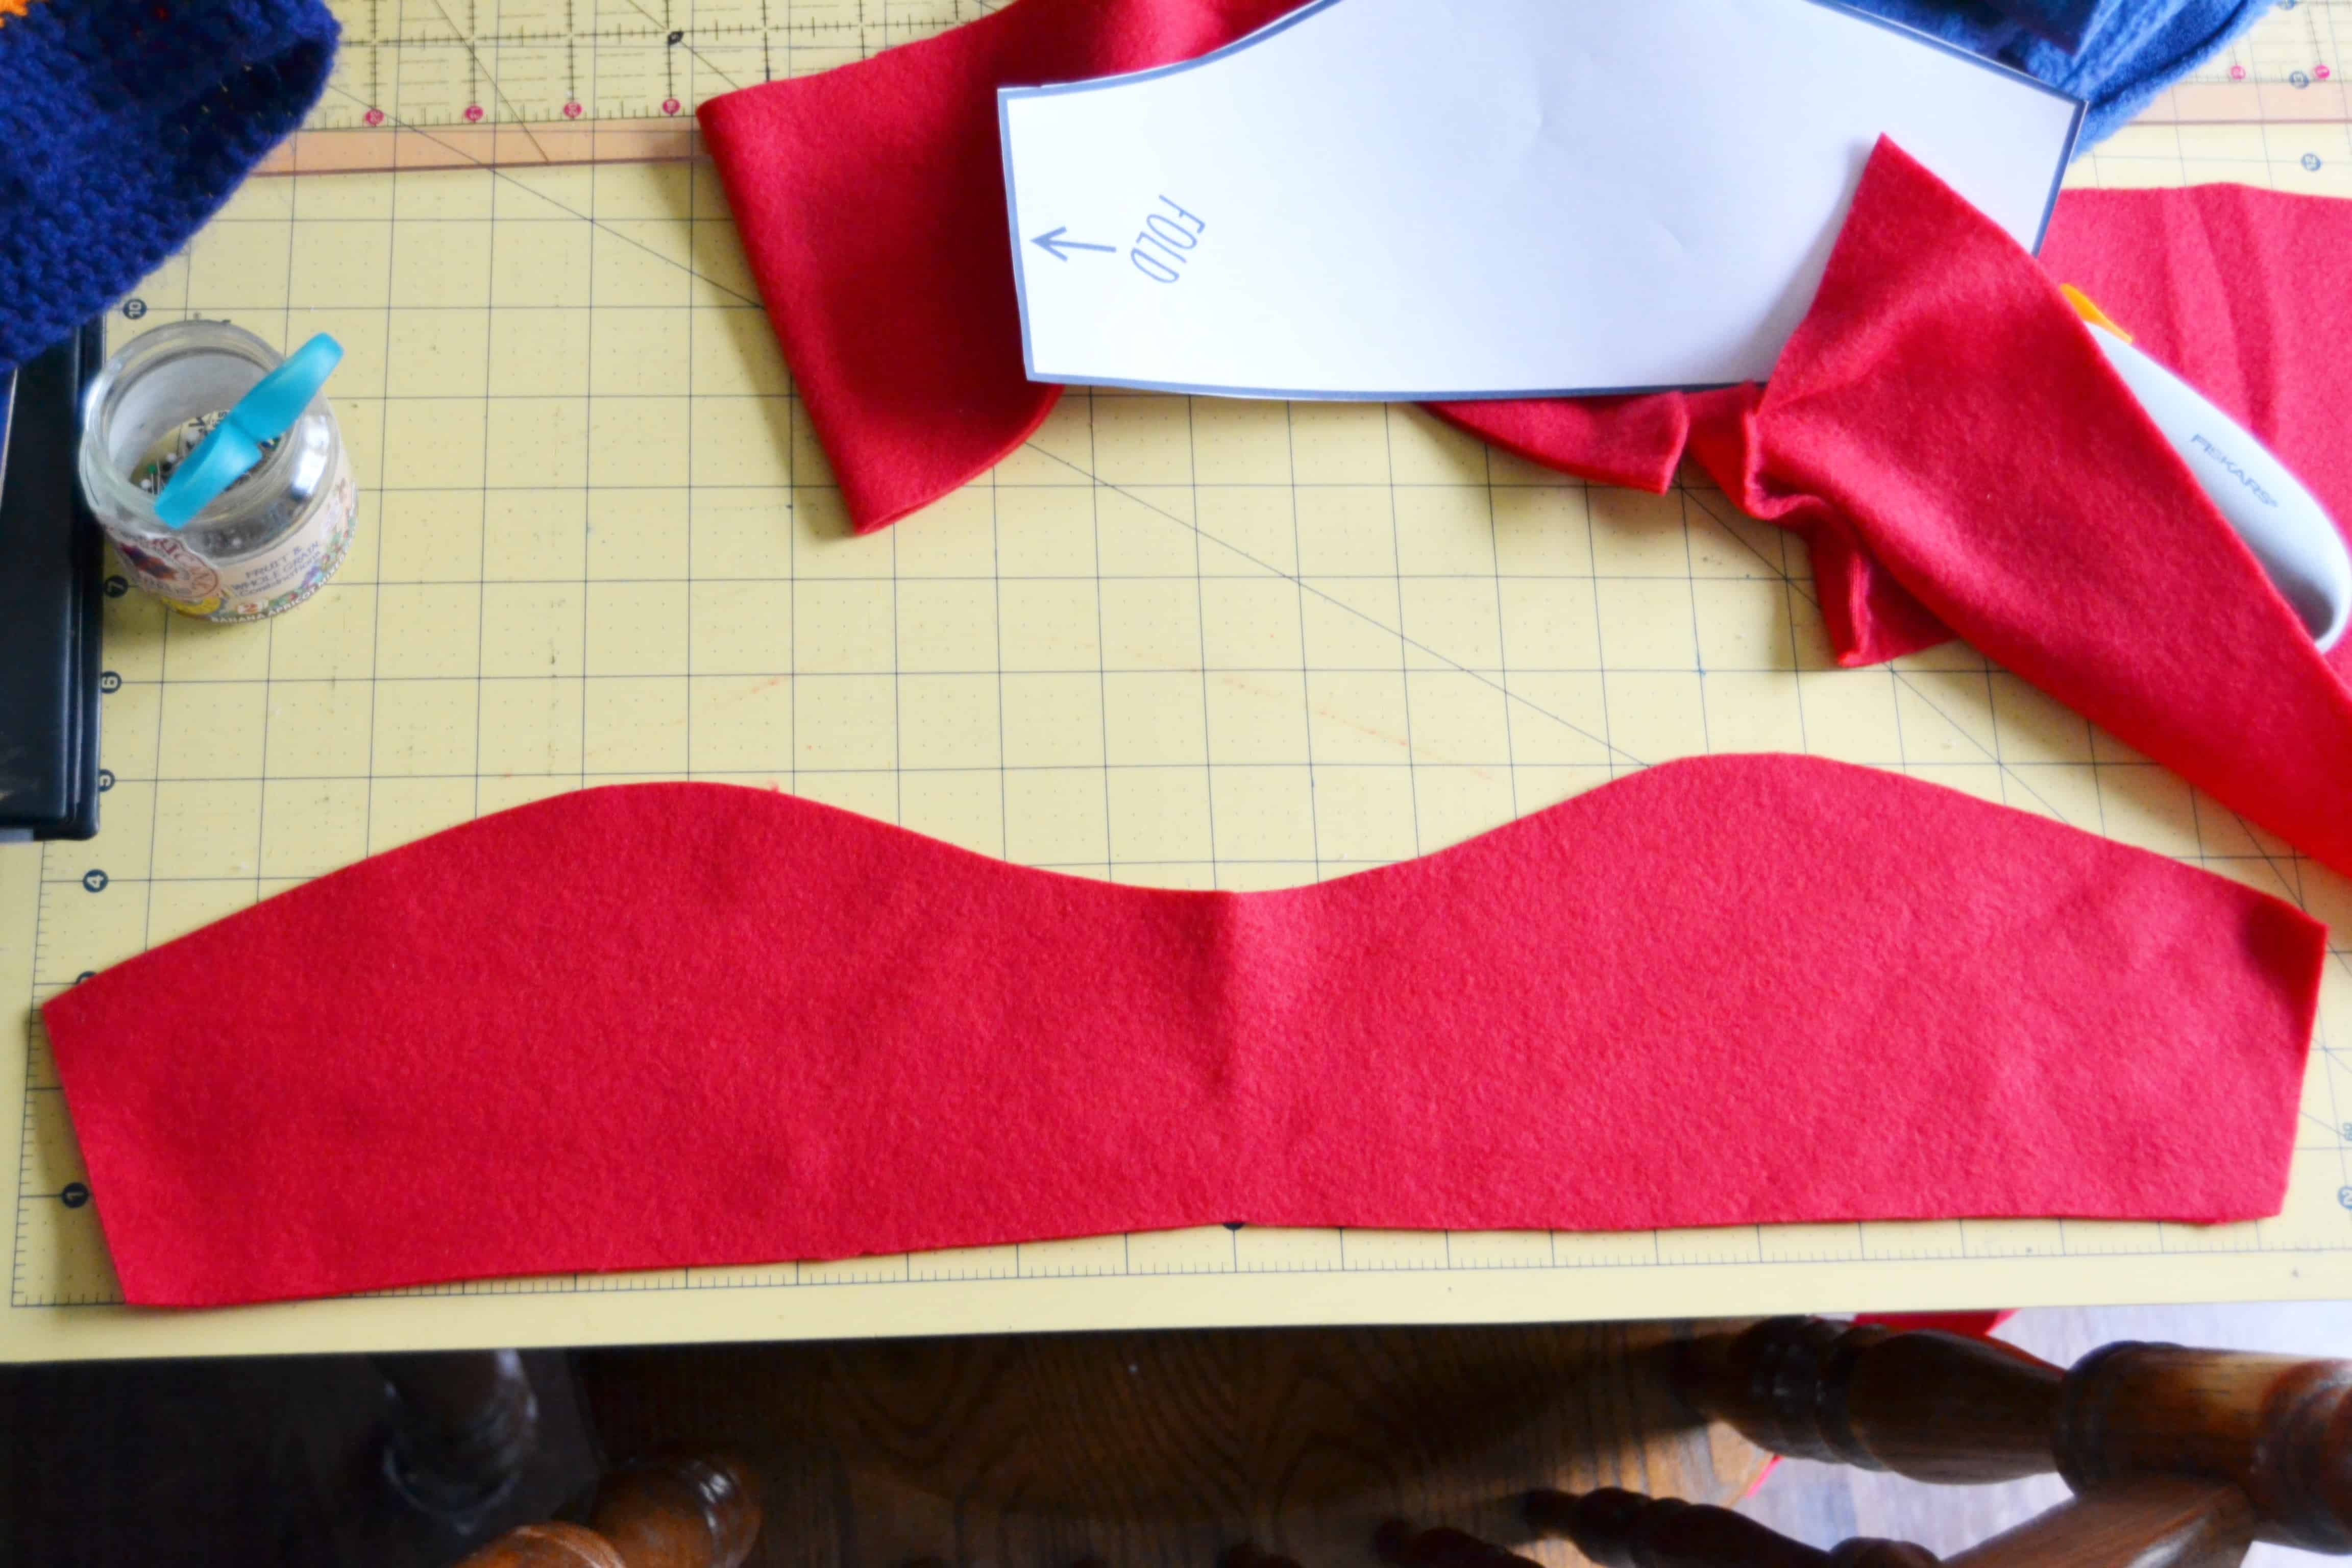 the cut out fabric unfolded